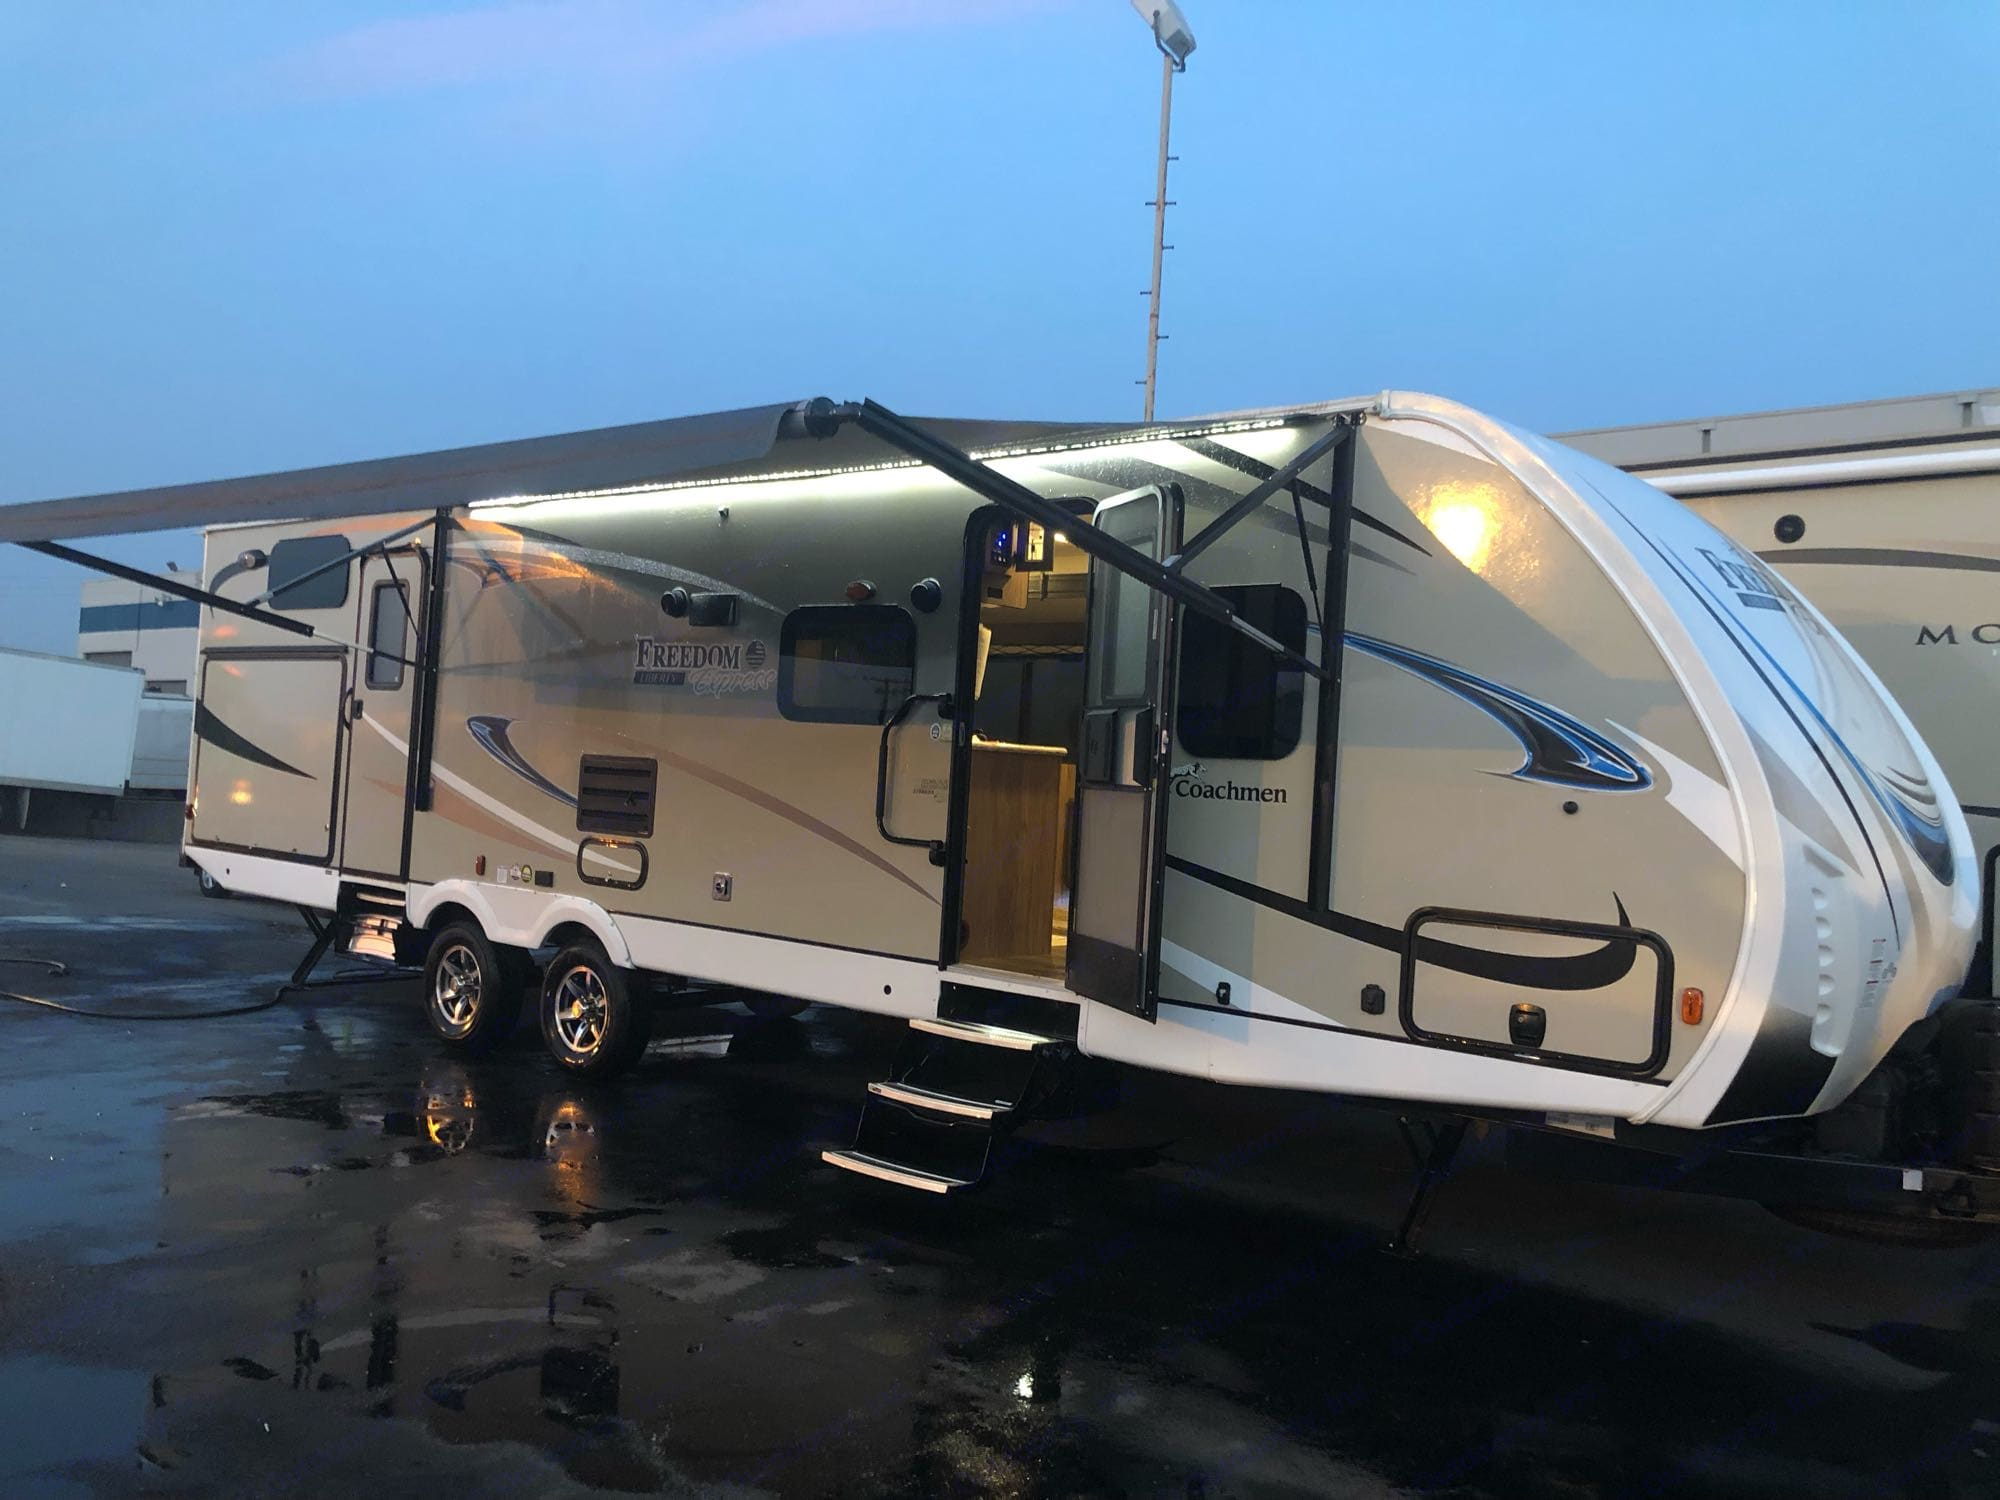 everything you would want built in! . Coachman Freedom liberty express 2018